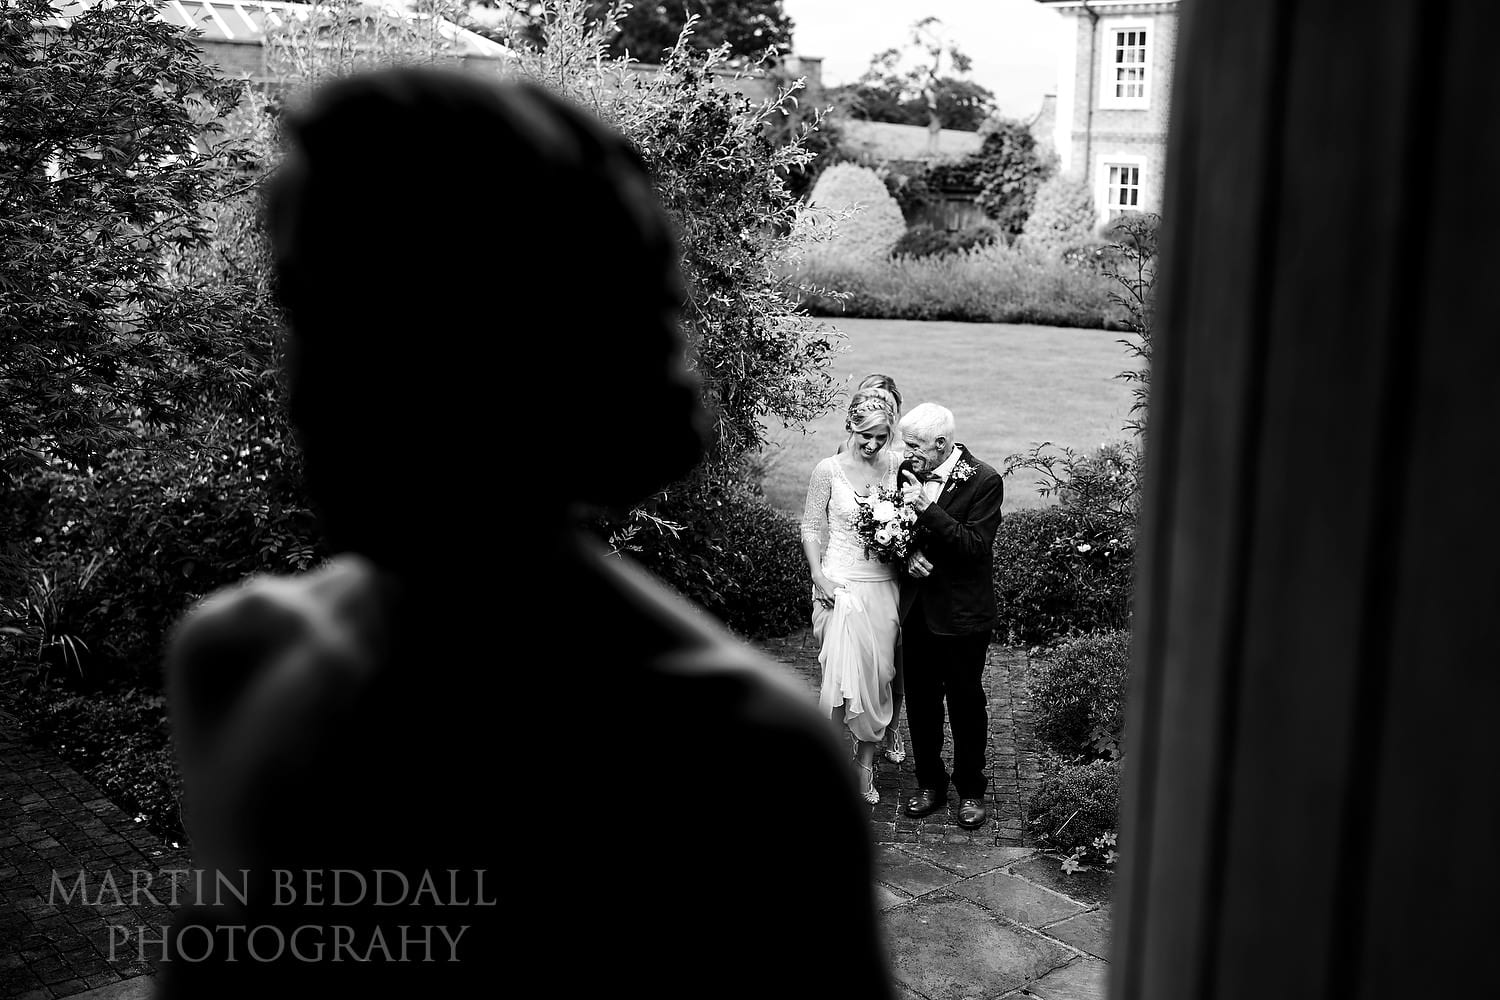 Last advice from her father for this East Sussex wedding bride